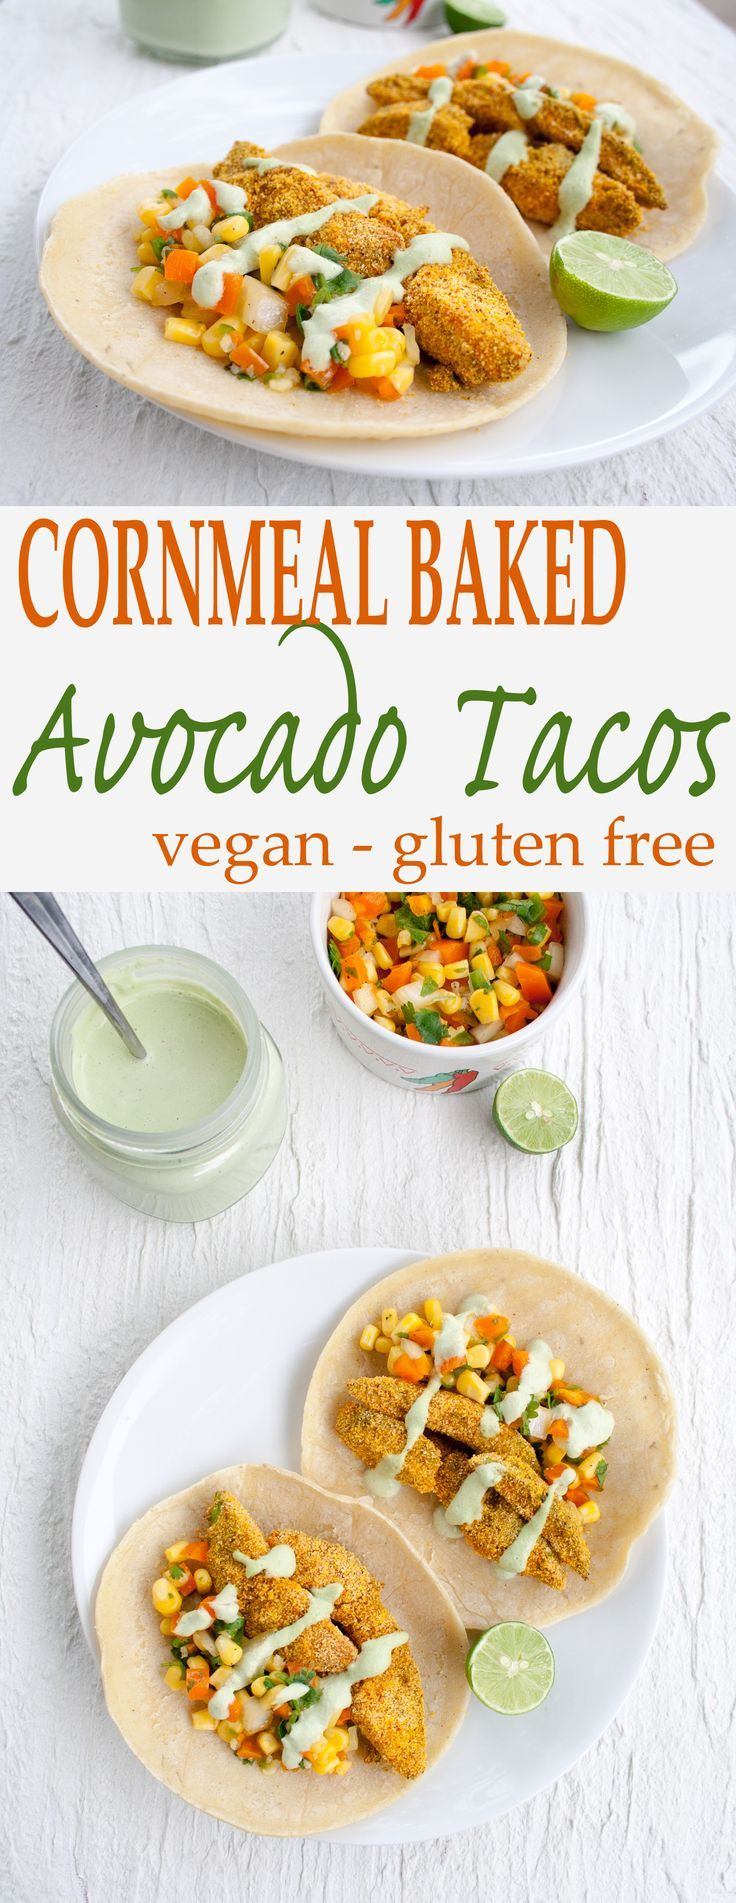 Cornmeal Baked Avocado Tacos - These vegan gluten free tacos have just the right balance of sweet and spicy.